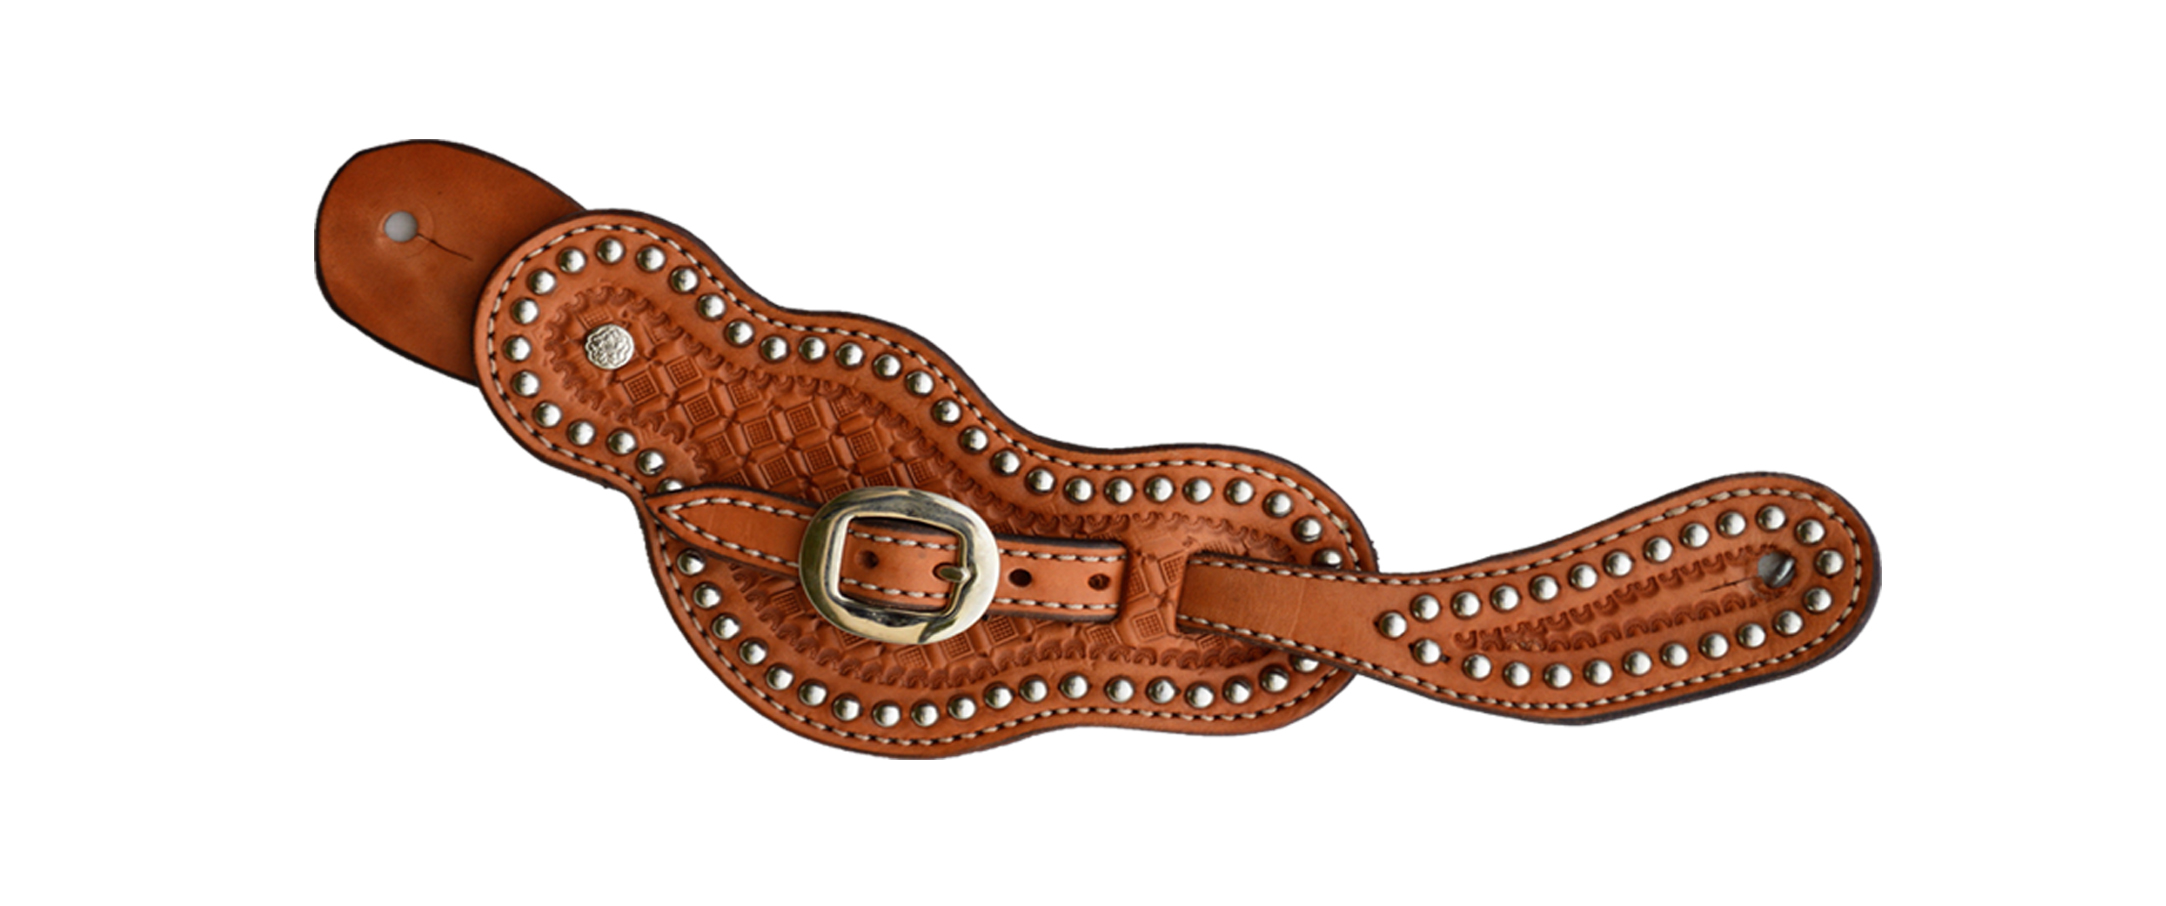 383-P Ladies spur strap golden leather geo tooled w/ button cover & spots